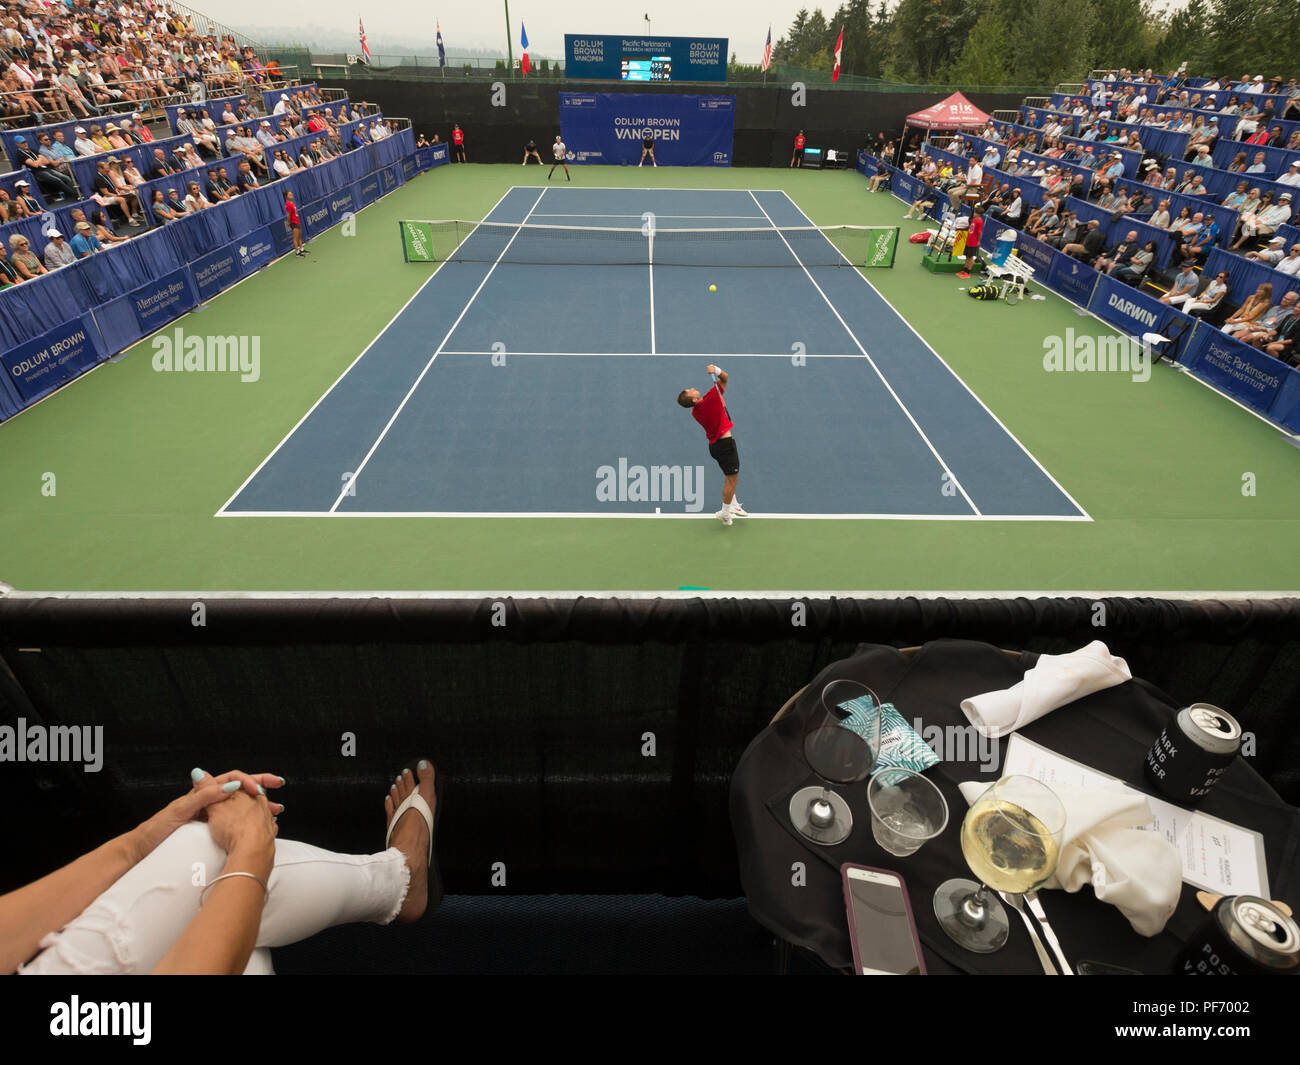 West Vancouver, Canada. 19 August 2018. Daniel Evans of Great Britain (bottom) and Jason Kubler (top) compete in ATP Challenger Tour Mens single final at Centre Court. Odlum Brown VanOpen Hollyburn Country Club.  © Gerry Rousseau/Alamy Live News - Stock Image